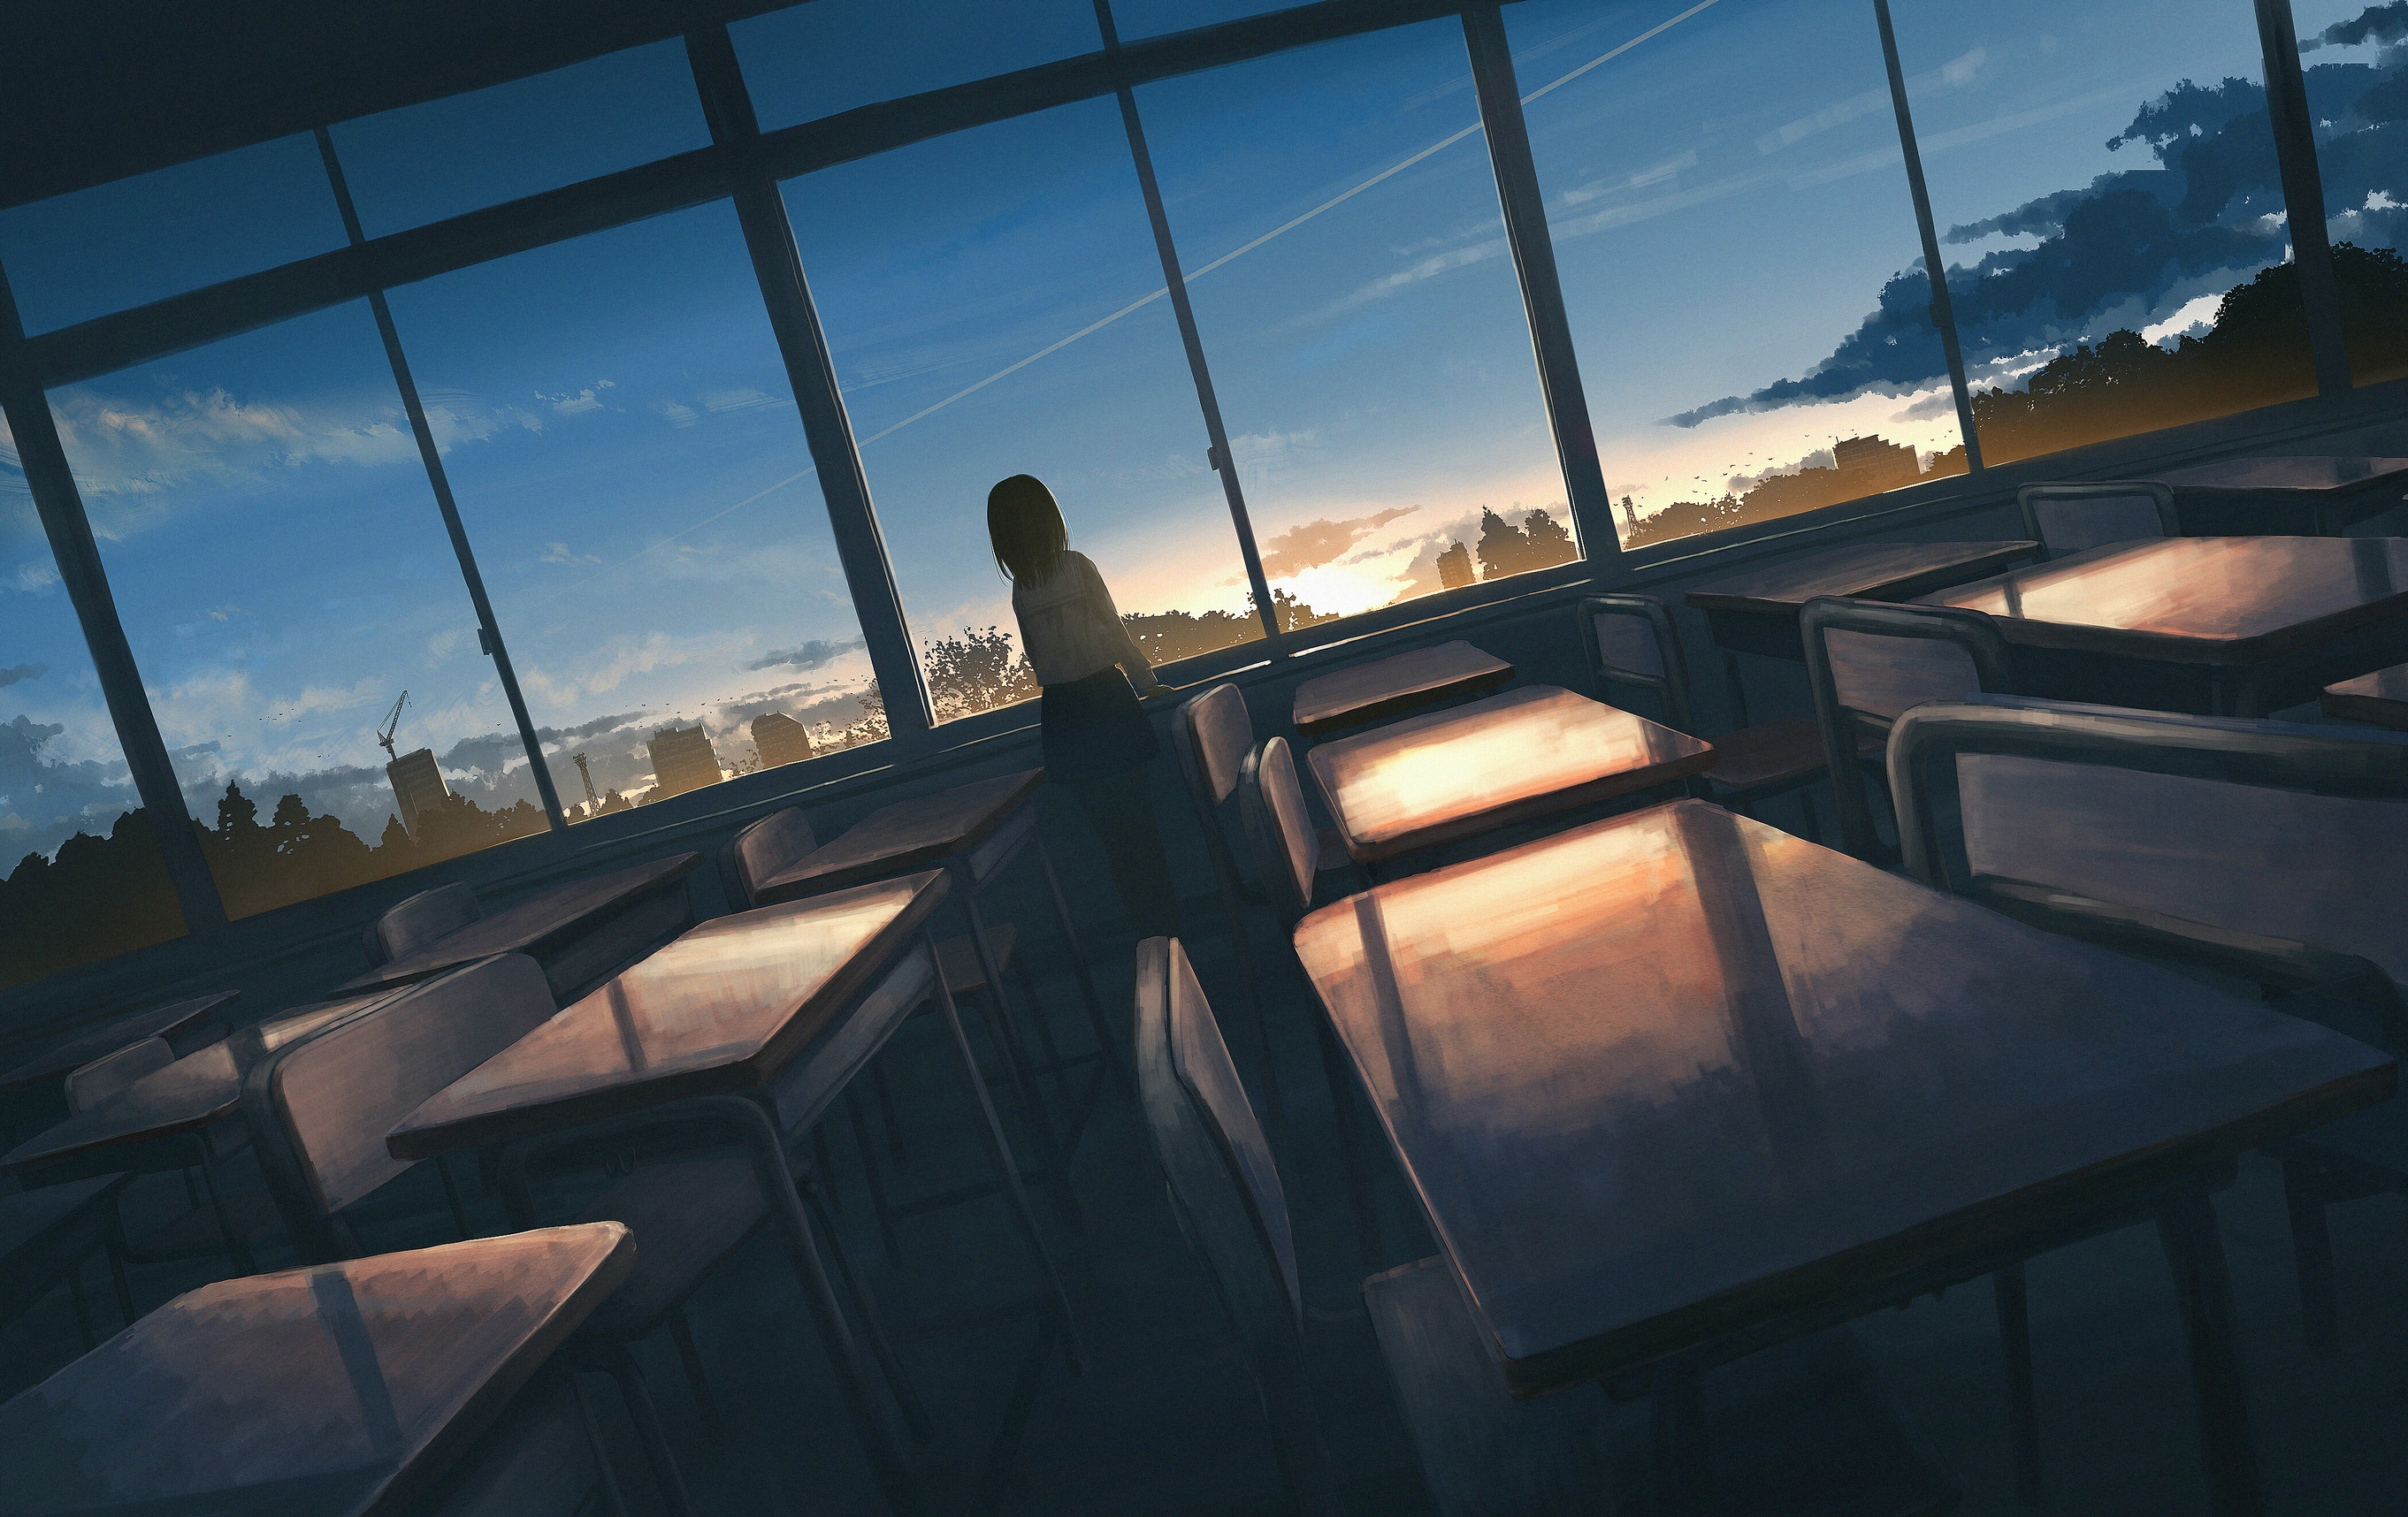 Anime 2723x1716 anime city digital art artwork moescape schoolgirl clouds sunset